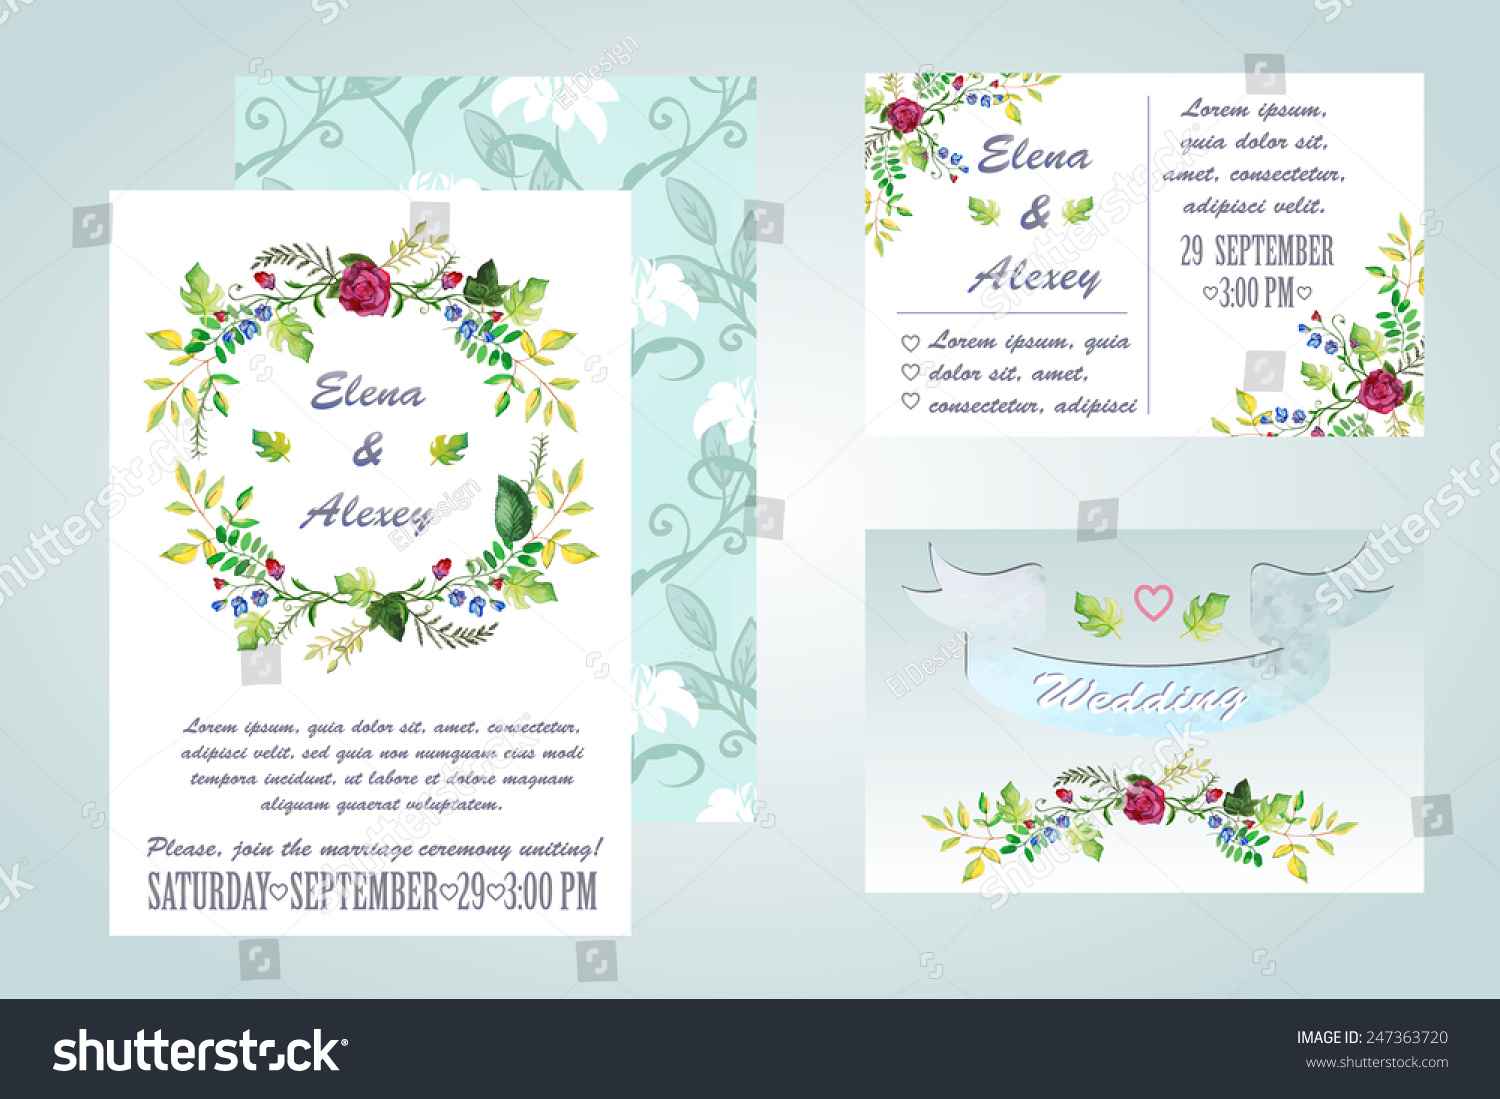 Watercolor wedding invitation vector illustration can stock vector watercolor wedding invitation vector illustration can be used to design the invitation to the stopboris Image collections